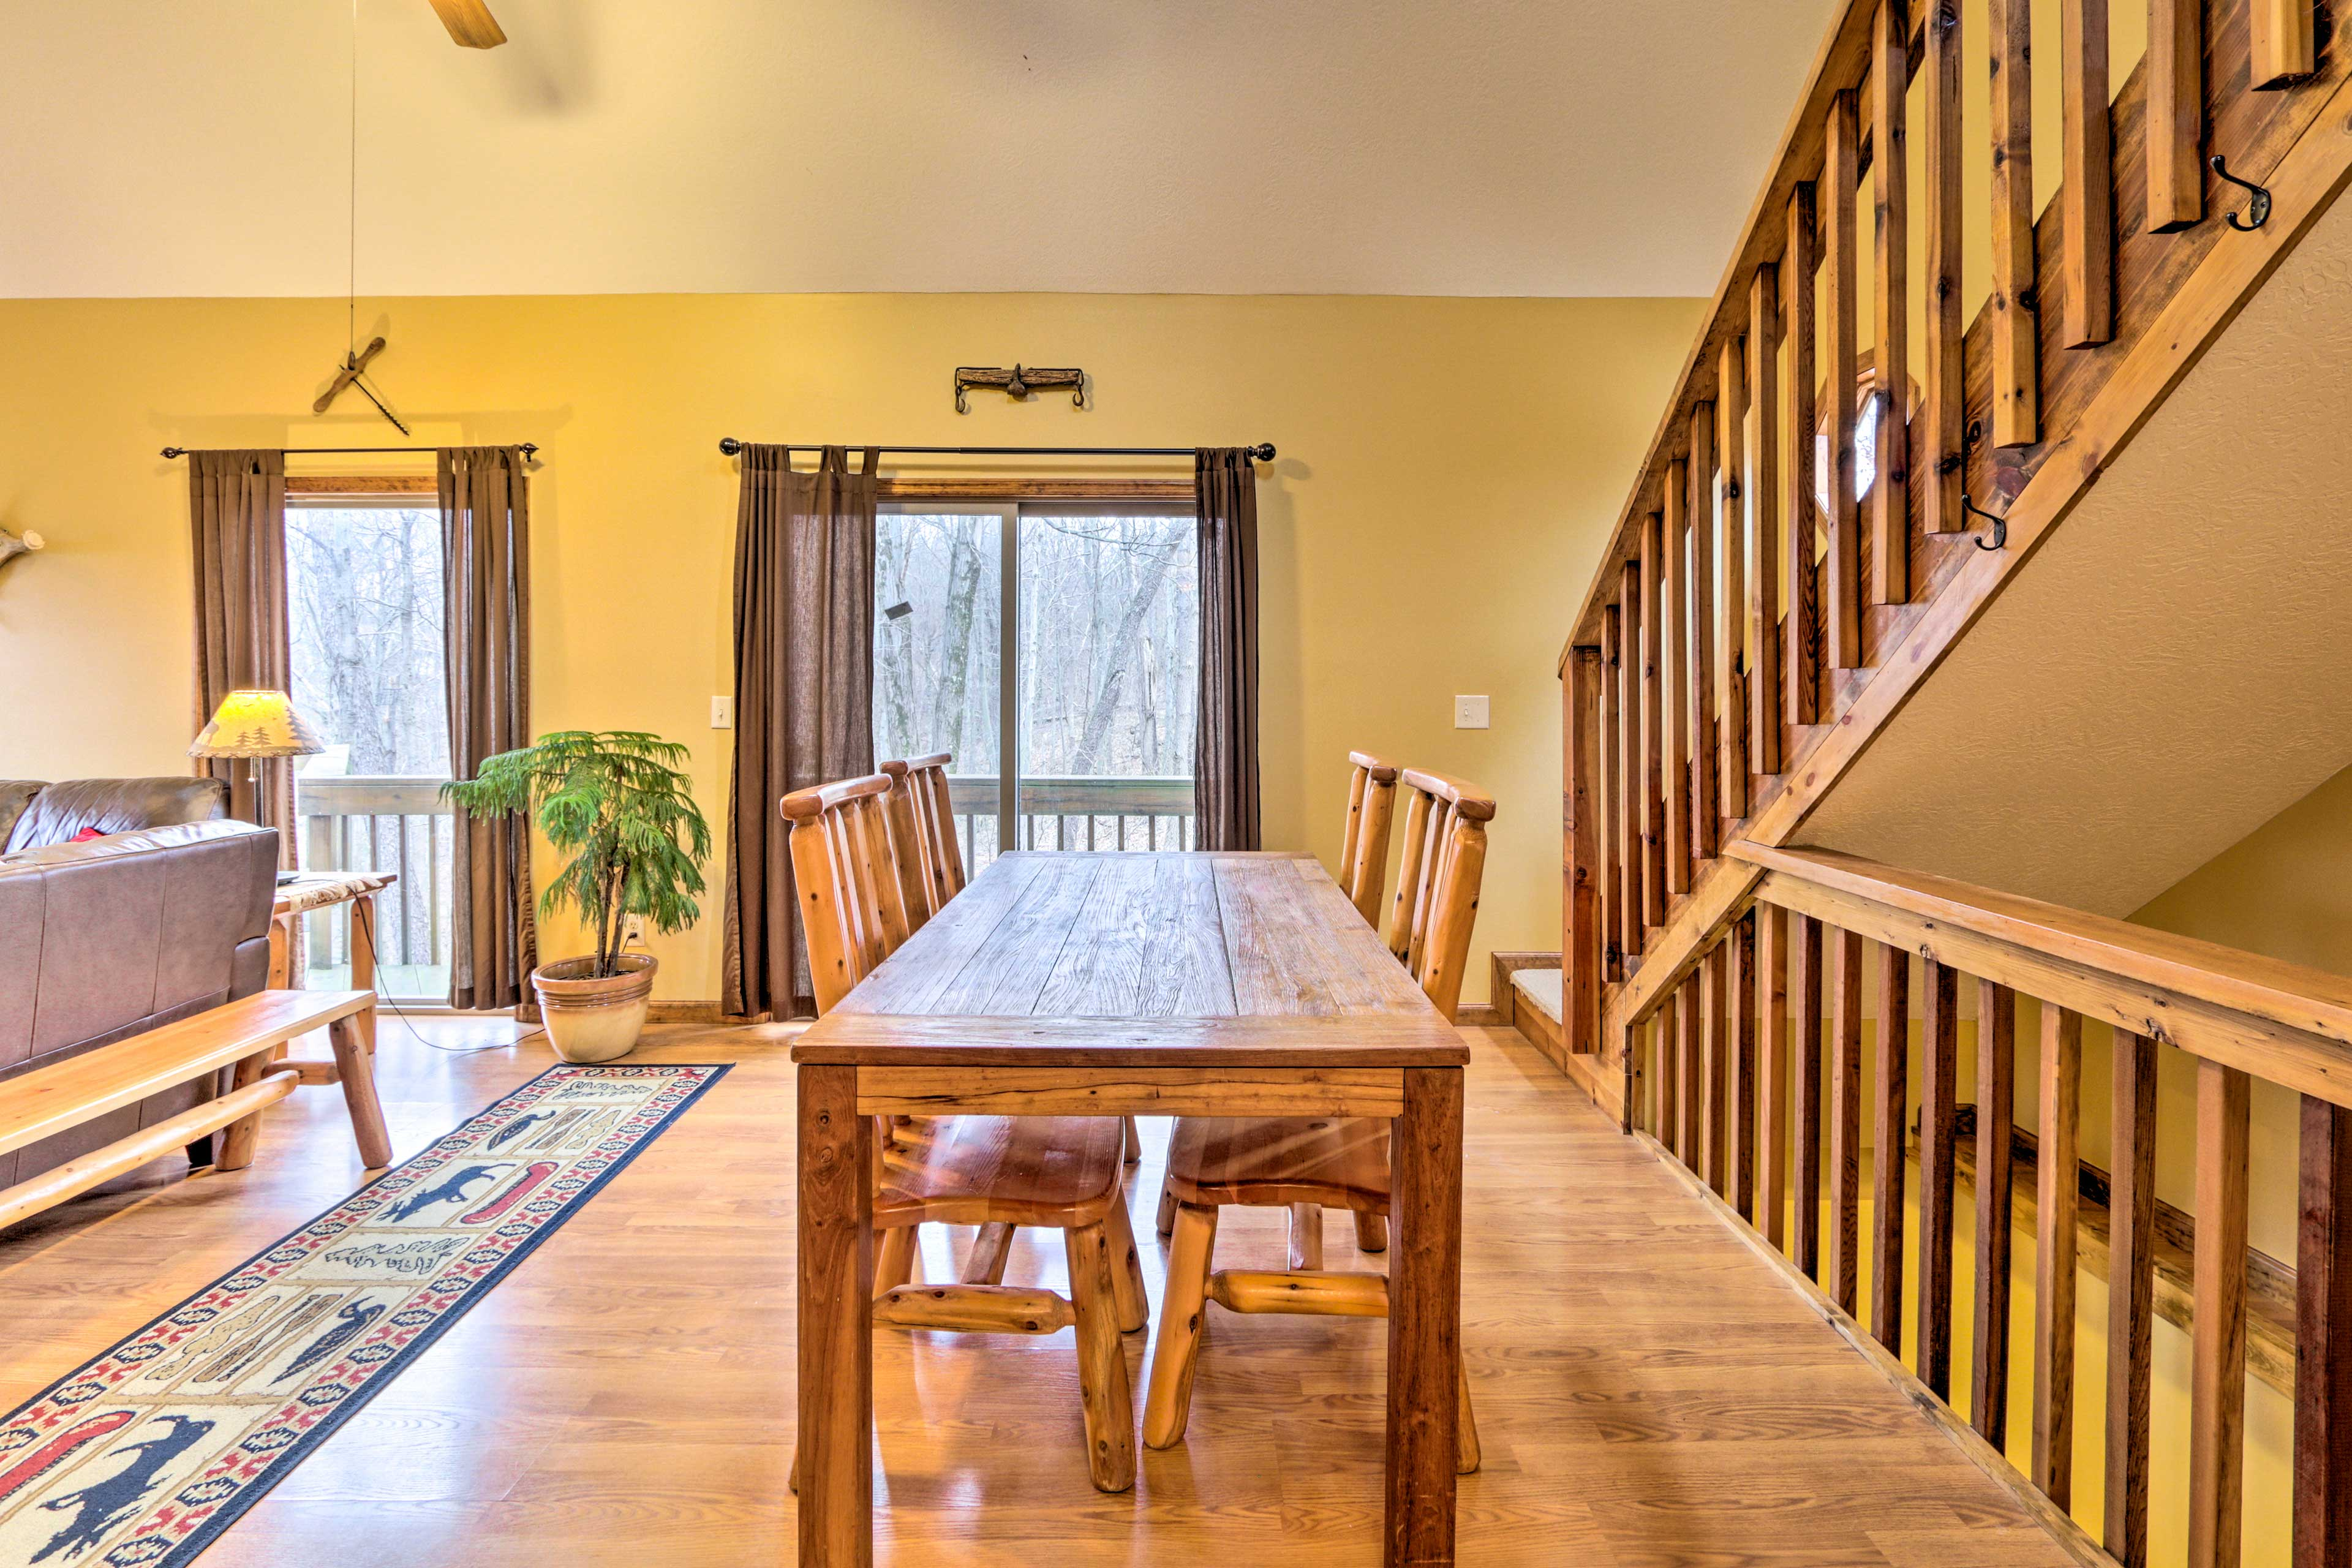 Enjoy a meal at the hardwood dining table